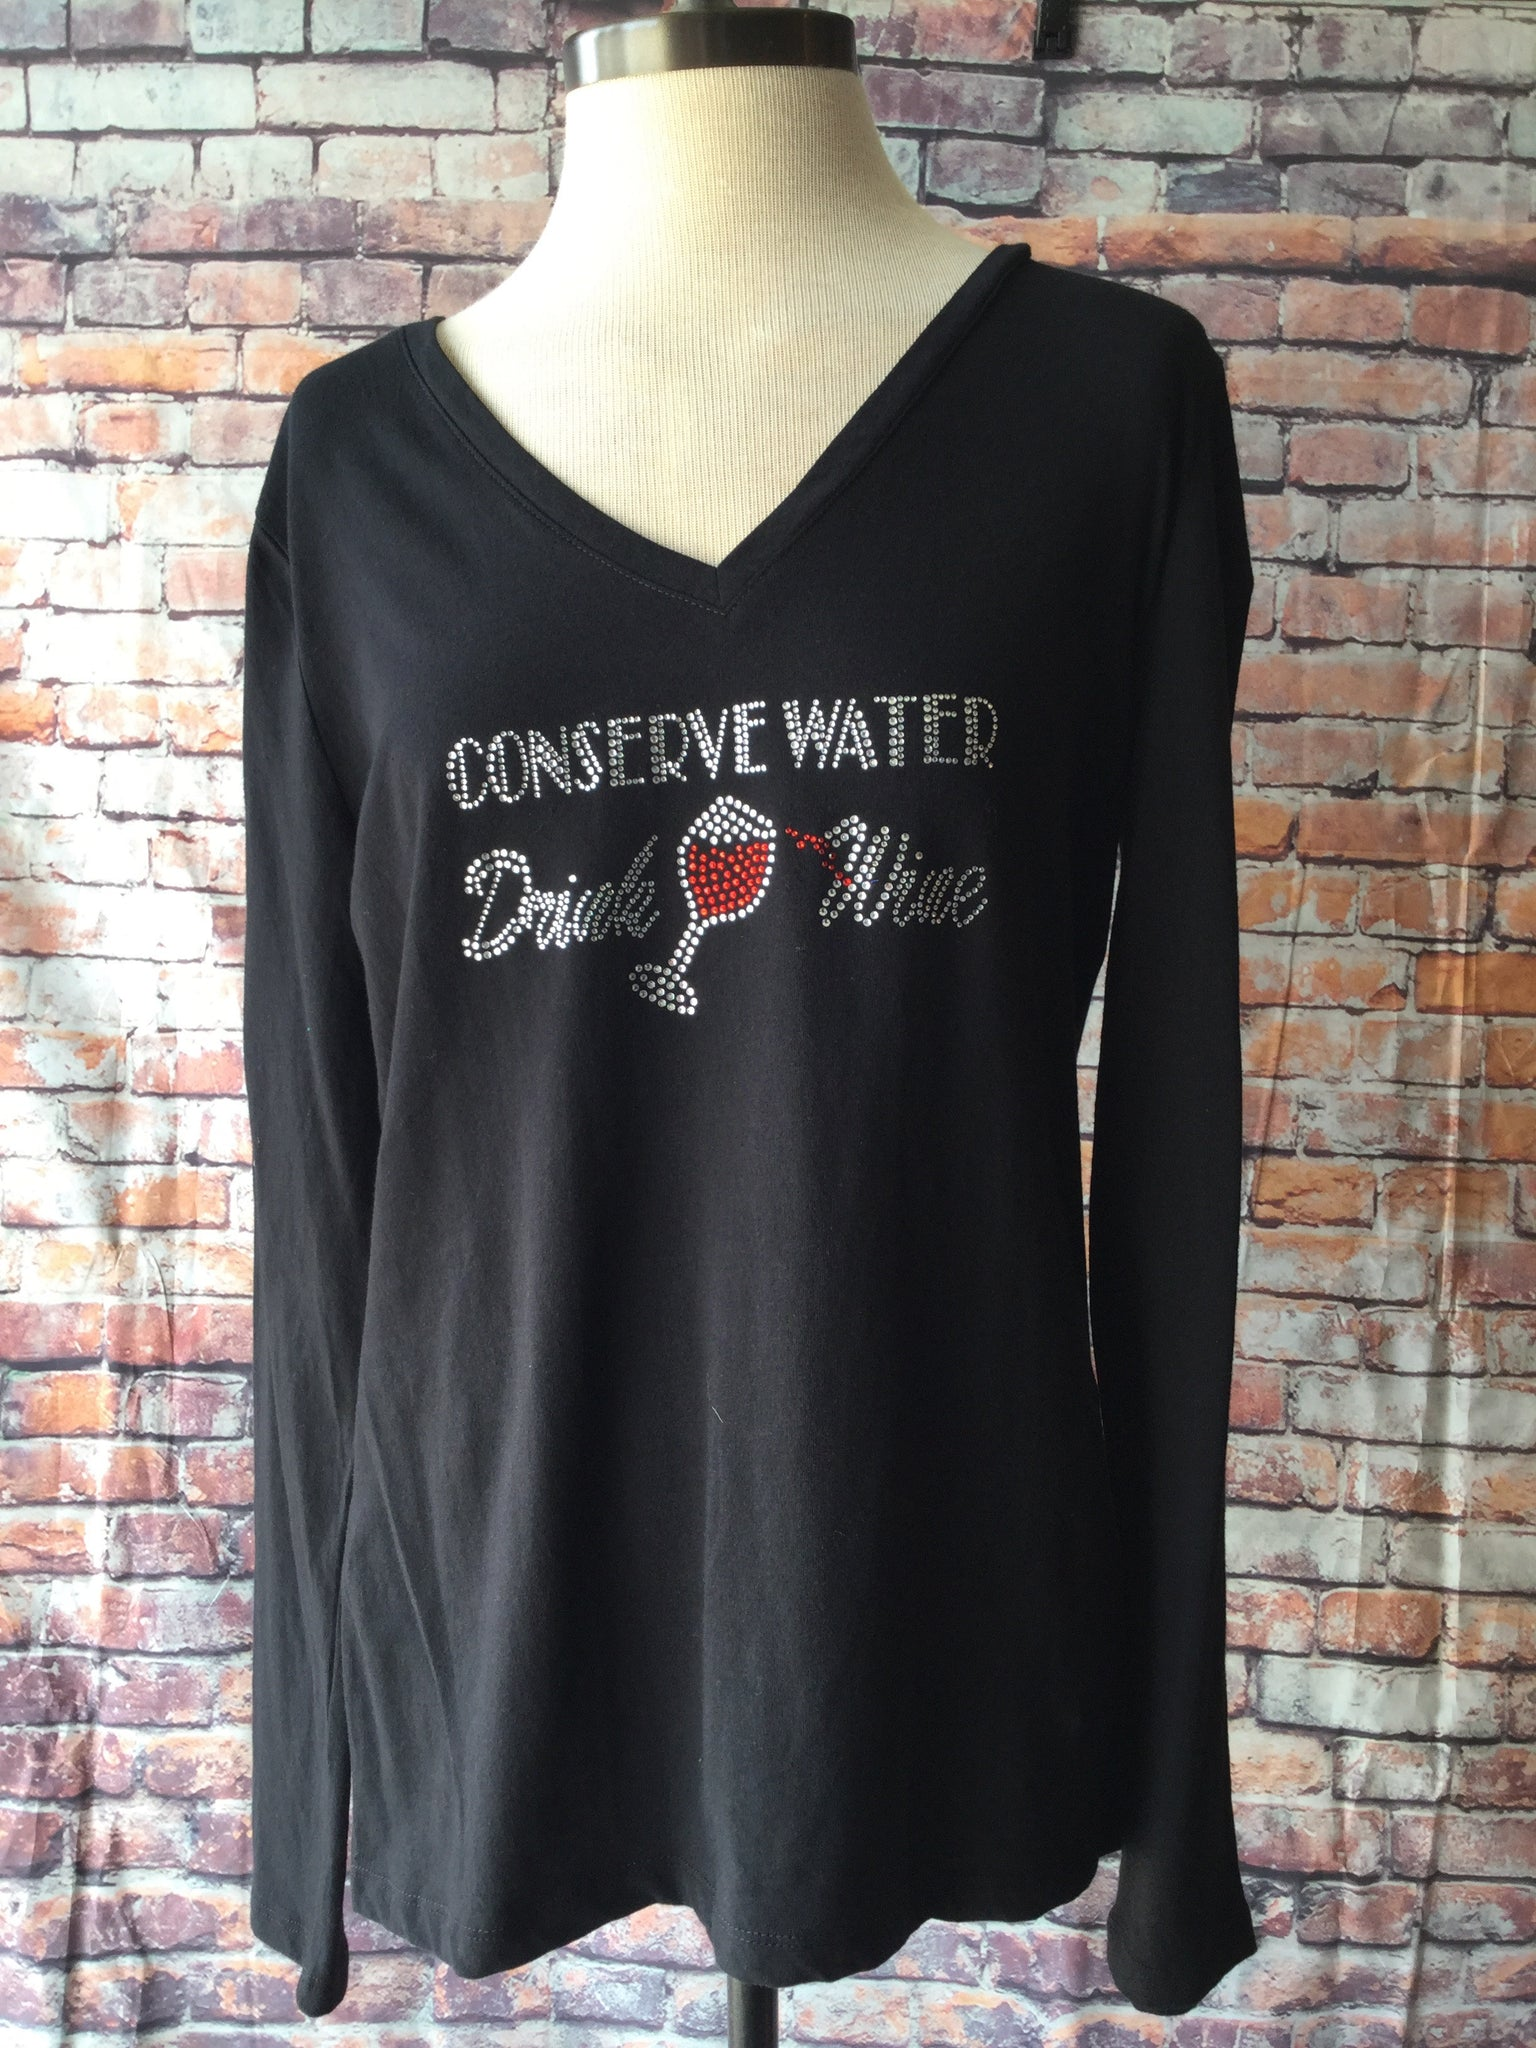 Conserve Water Drink Wine Rhinestone shirt